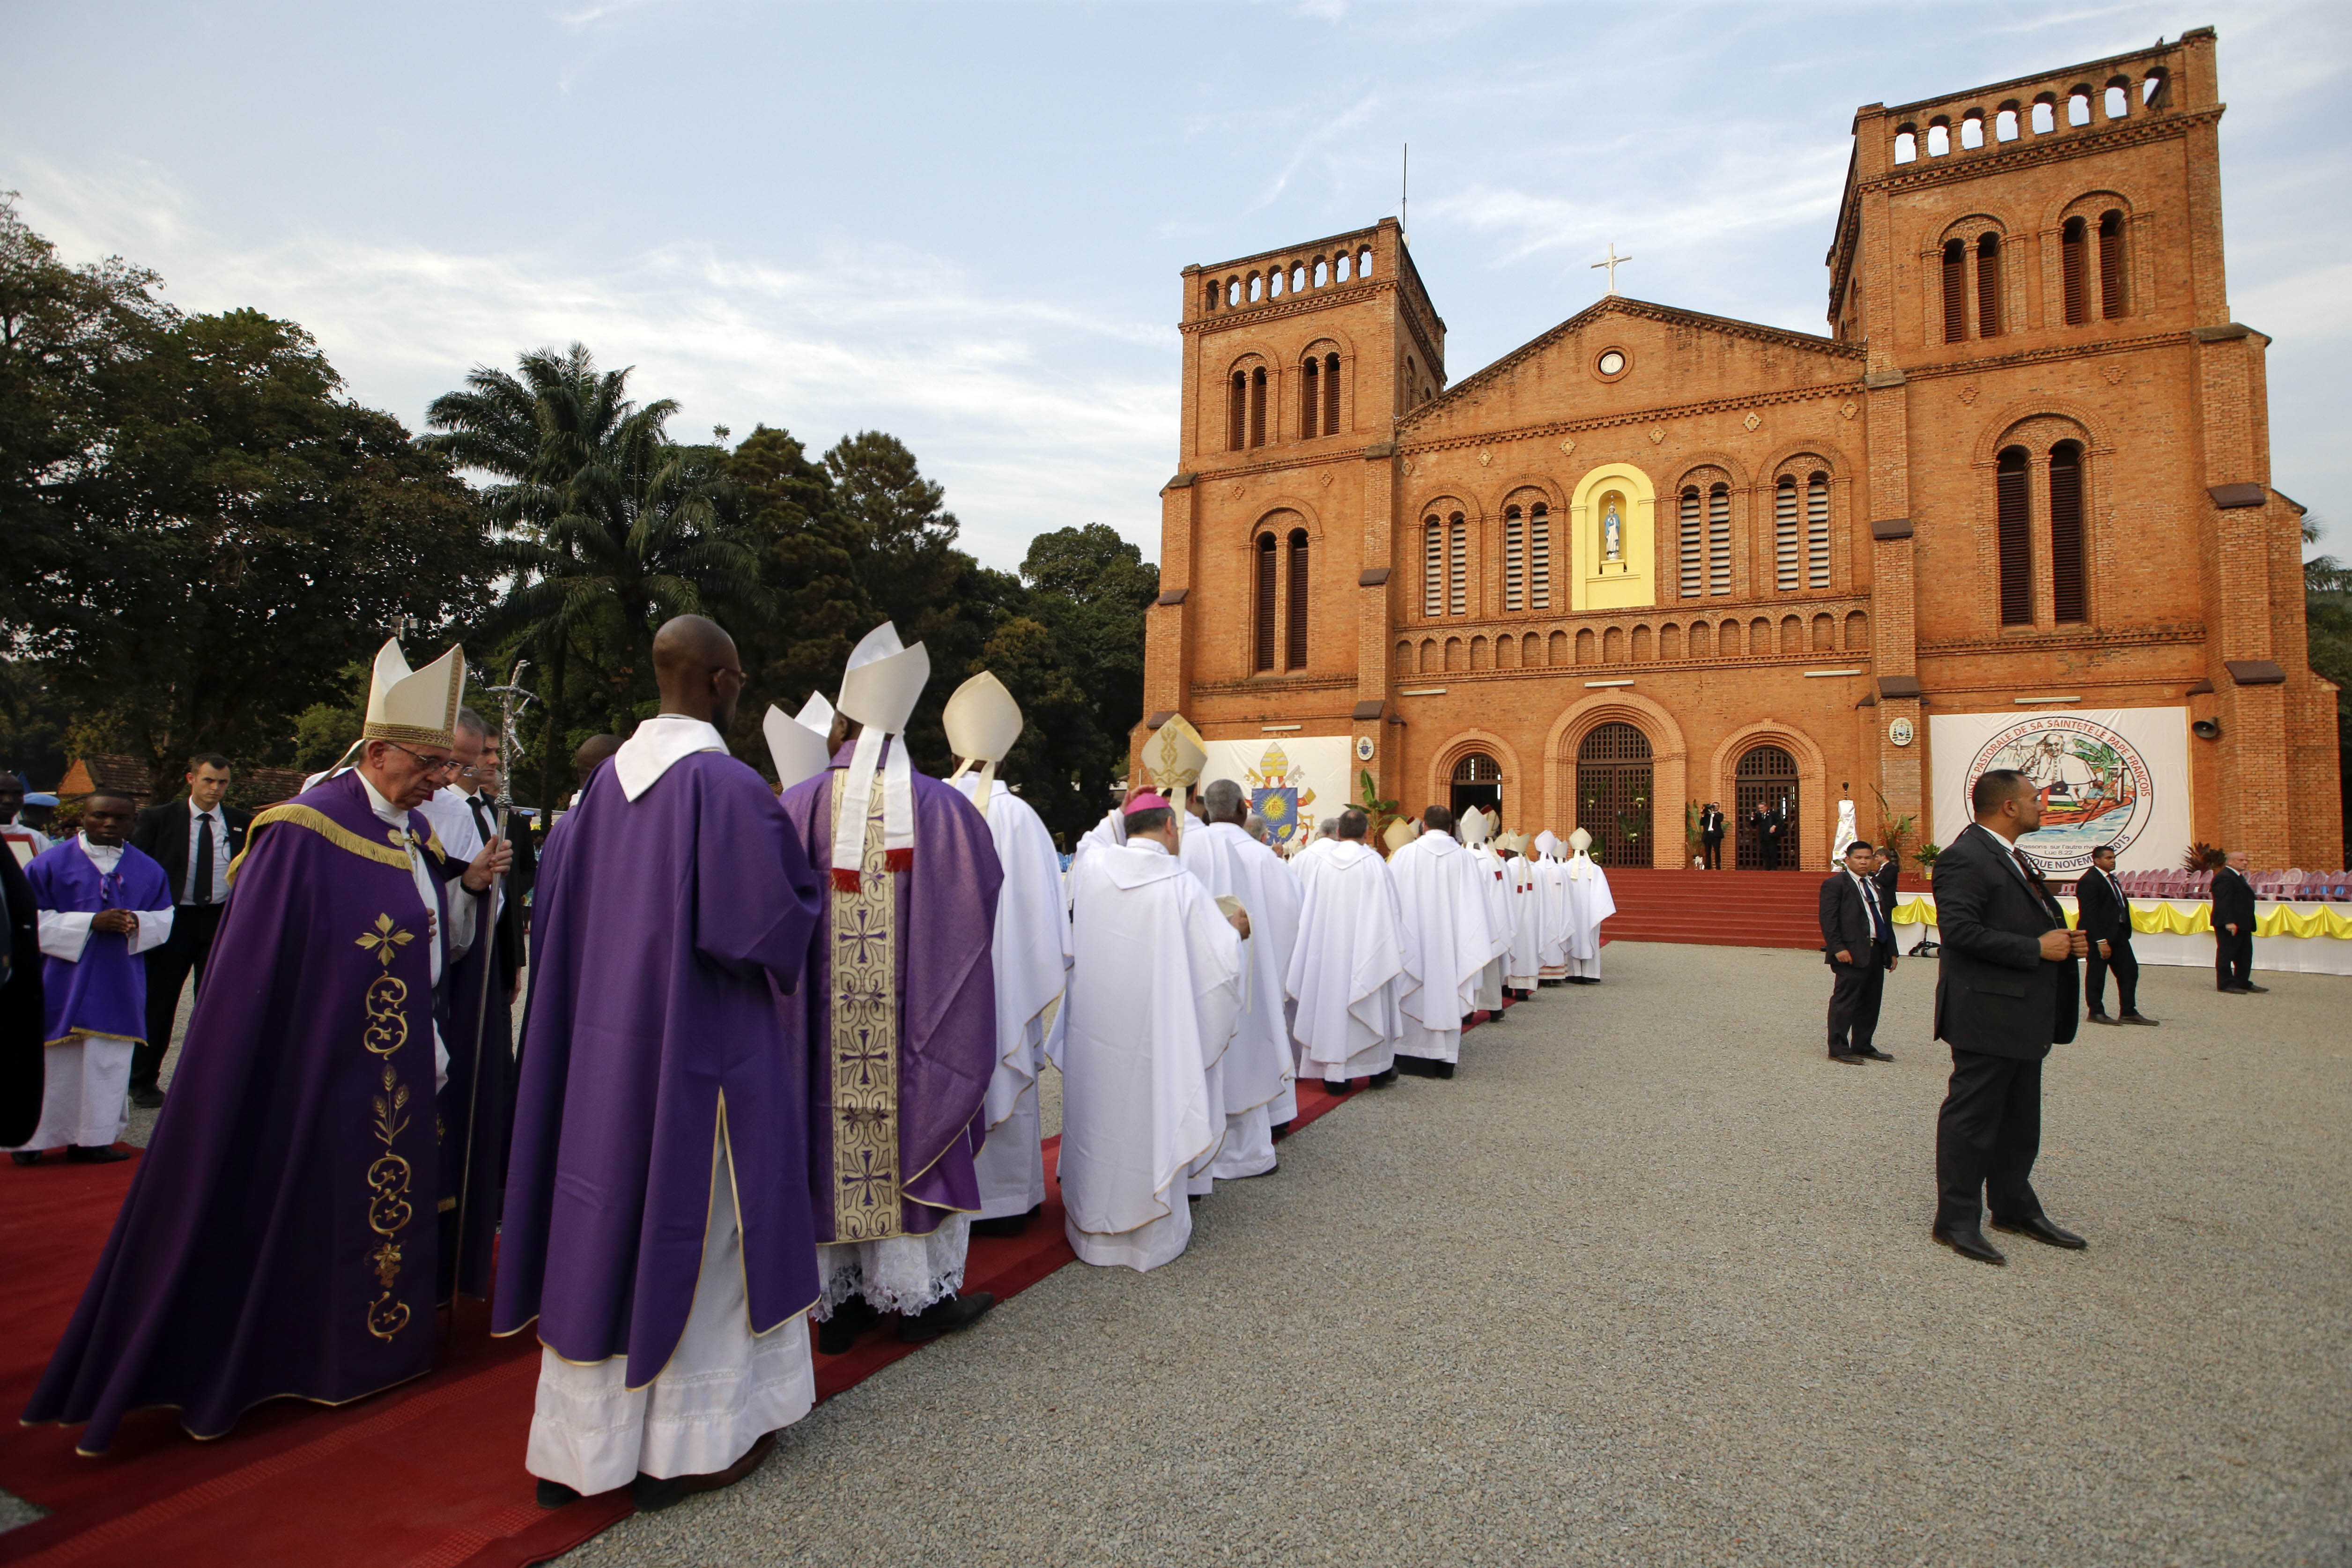 Pope Francis arrives to open the holy door of the Bangui cathedral, Central African Republic, Sunday, Nov. 29, 2015.